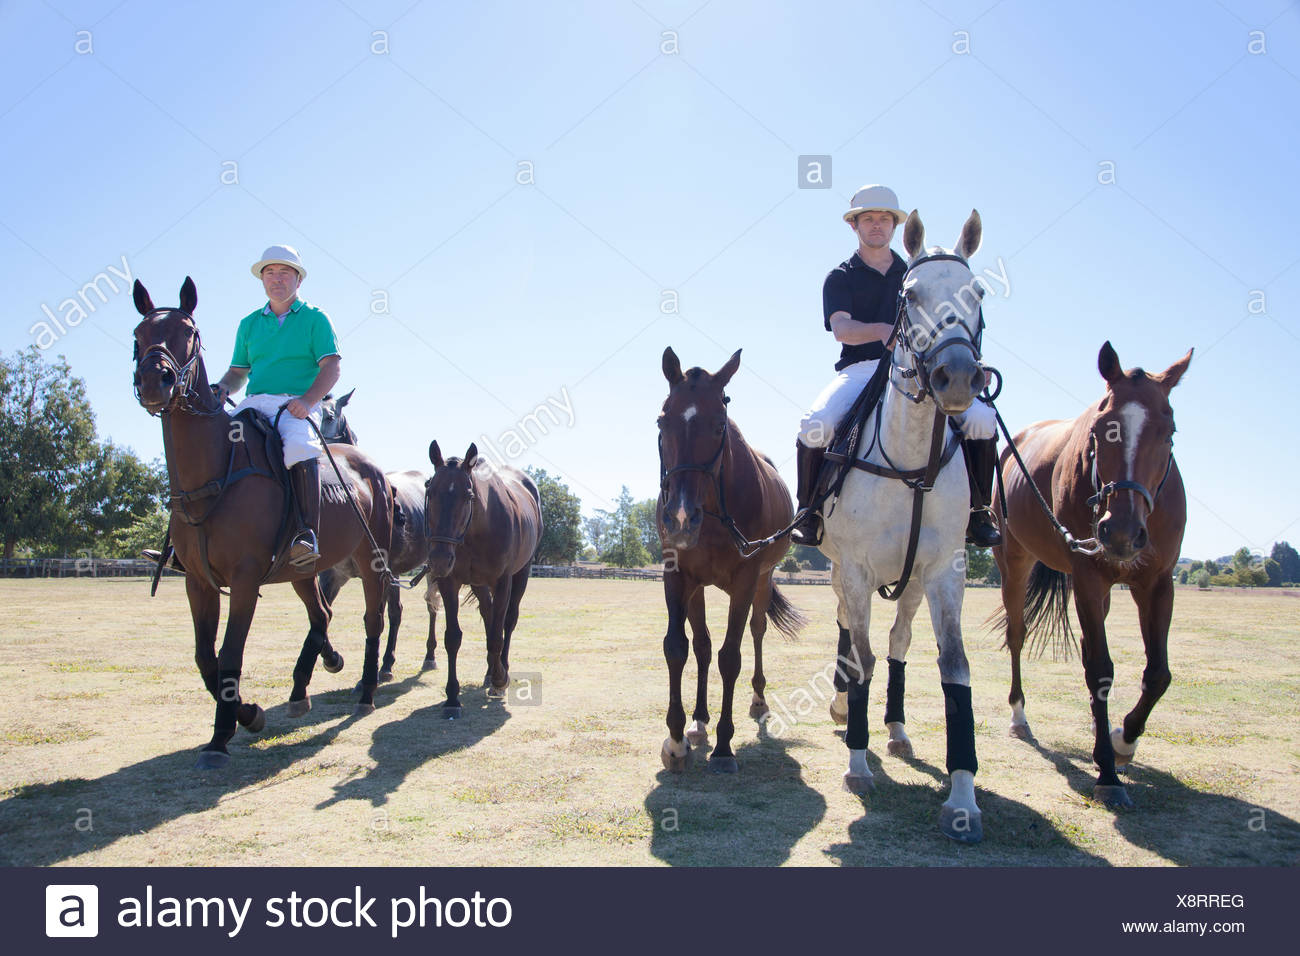 Polo players, leading horses in from field - Stock Image